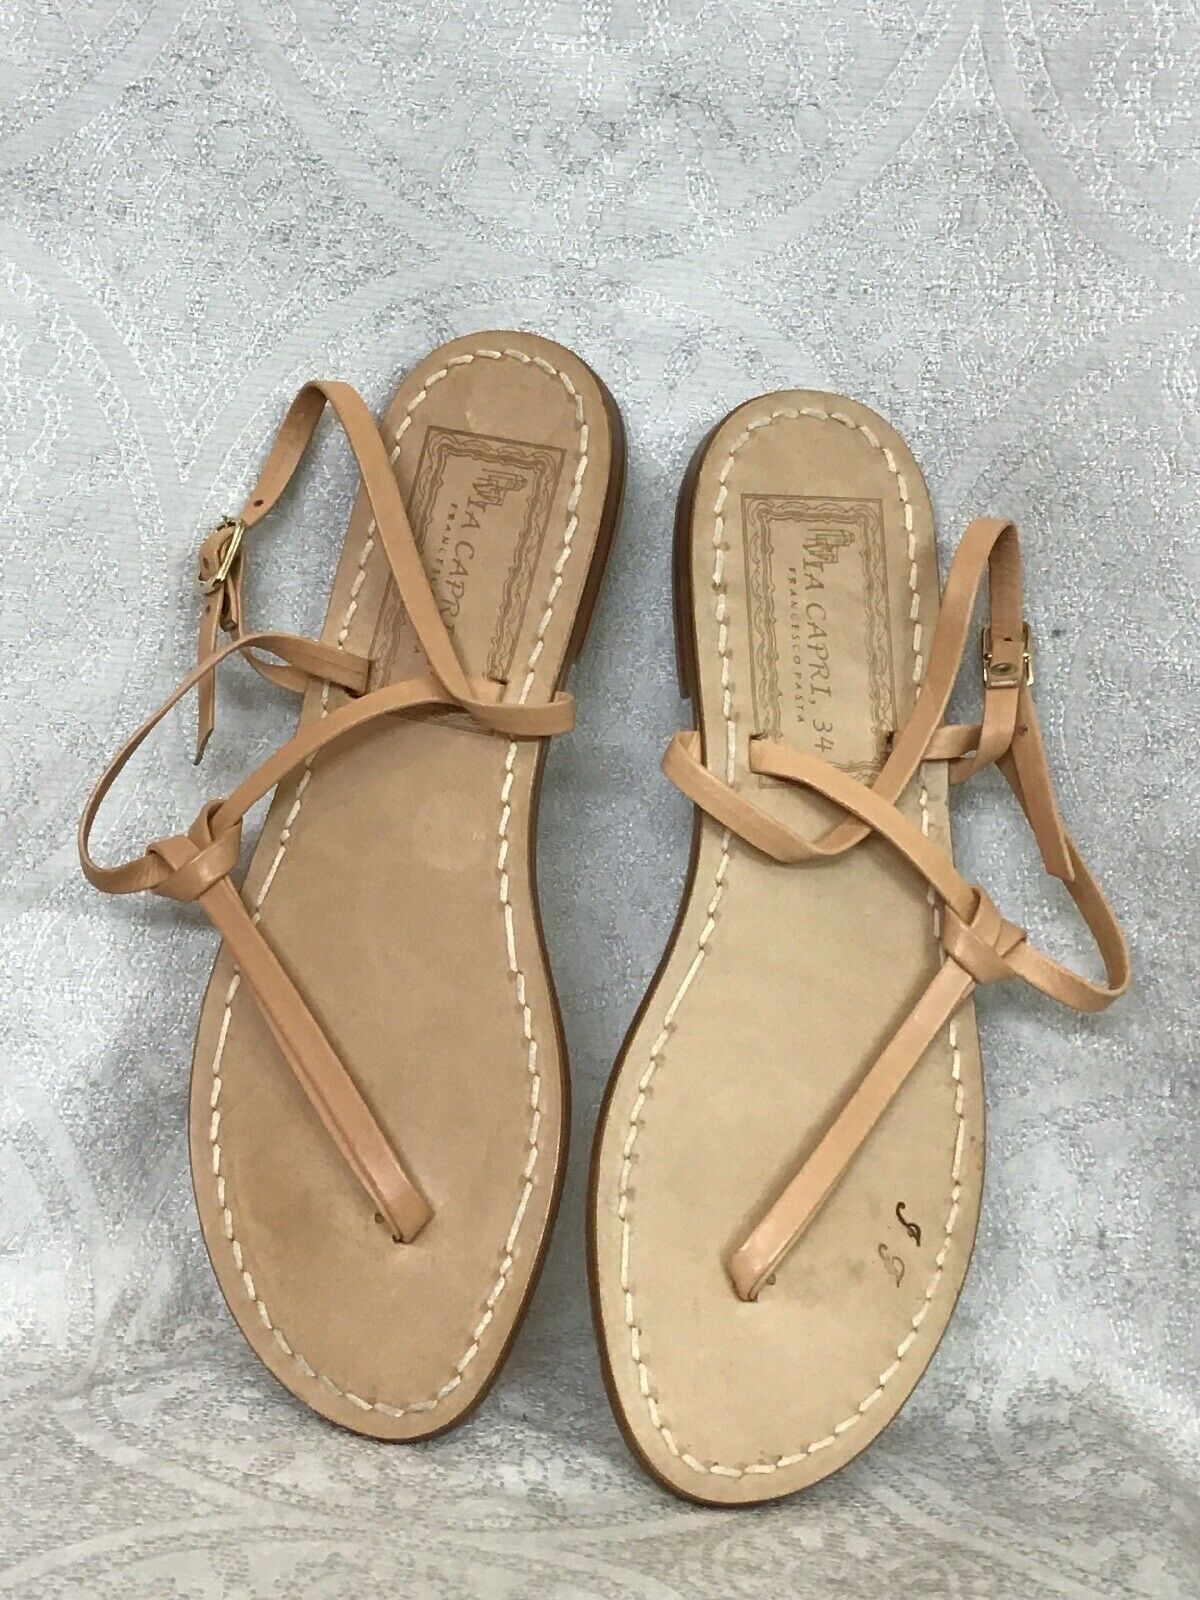 Via Capri Sandle Nude Leather Straps gold Buckle Size 40 New